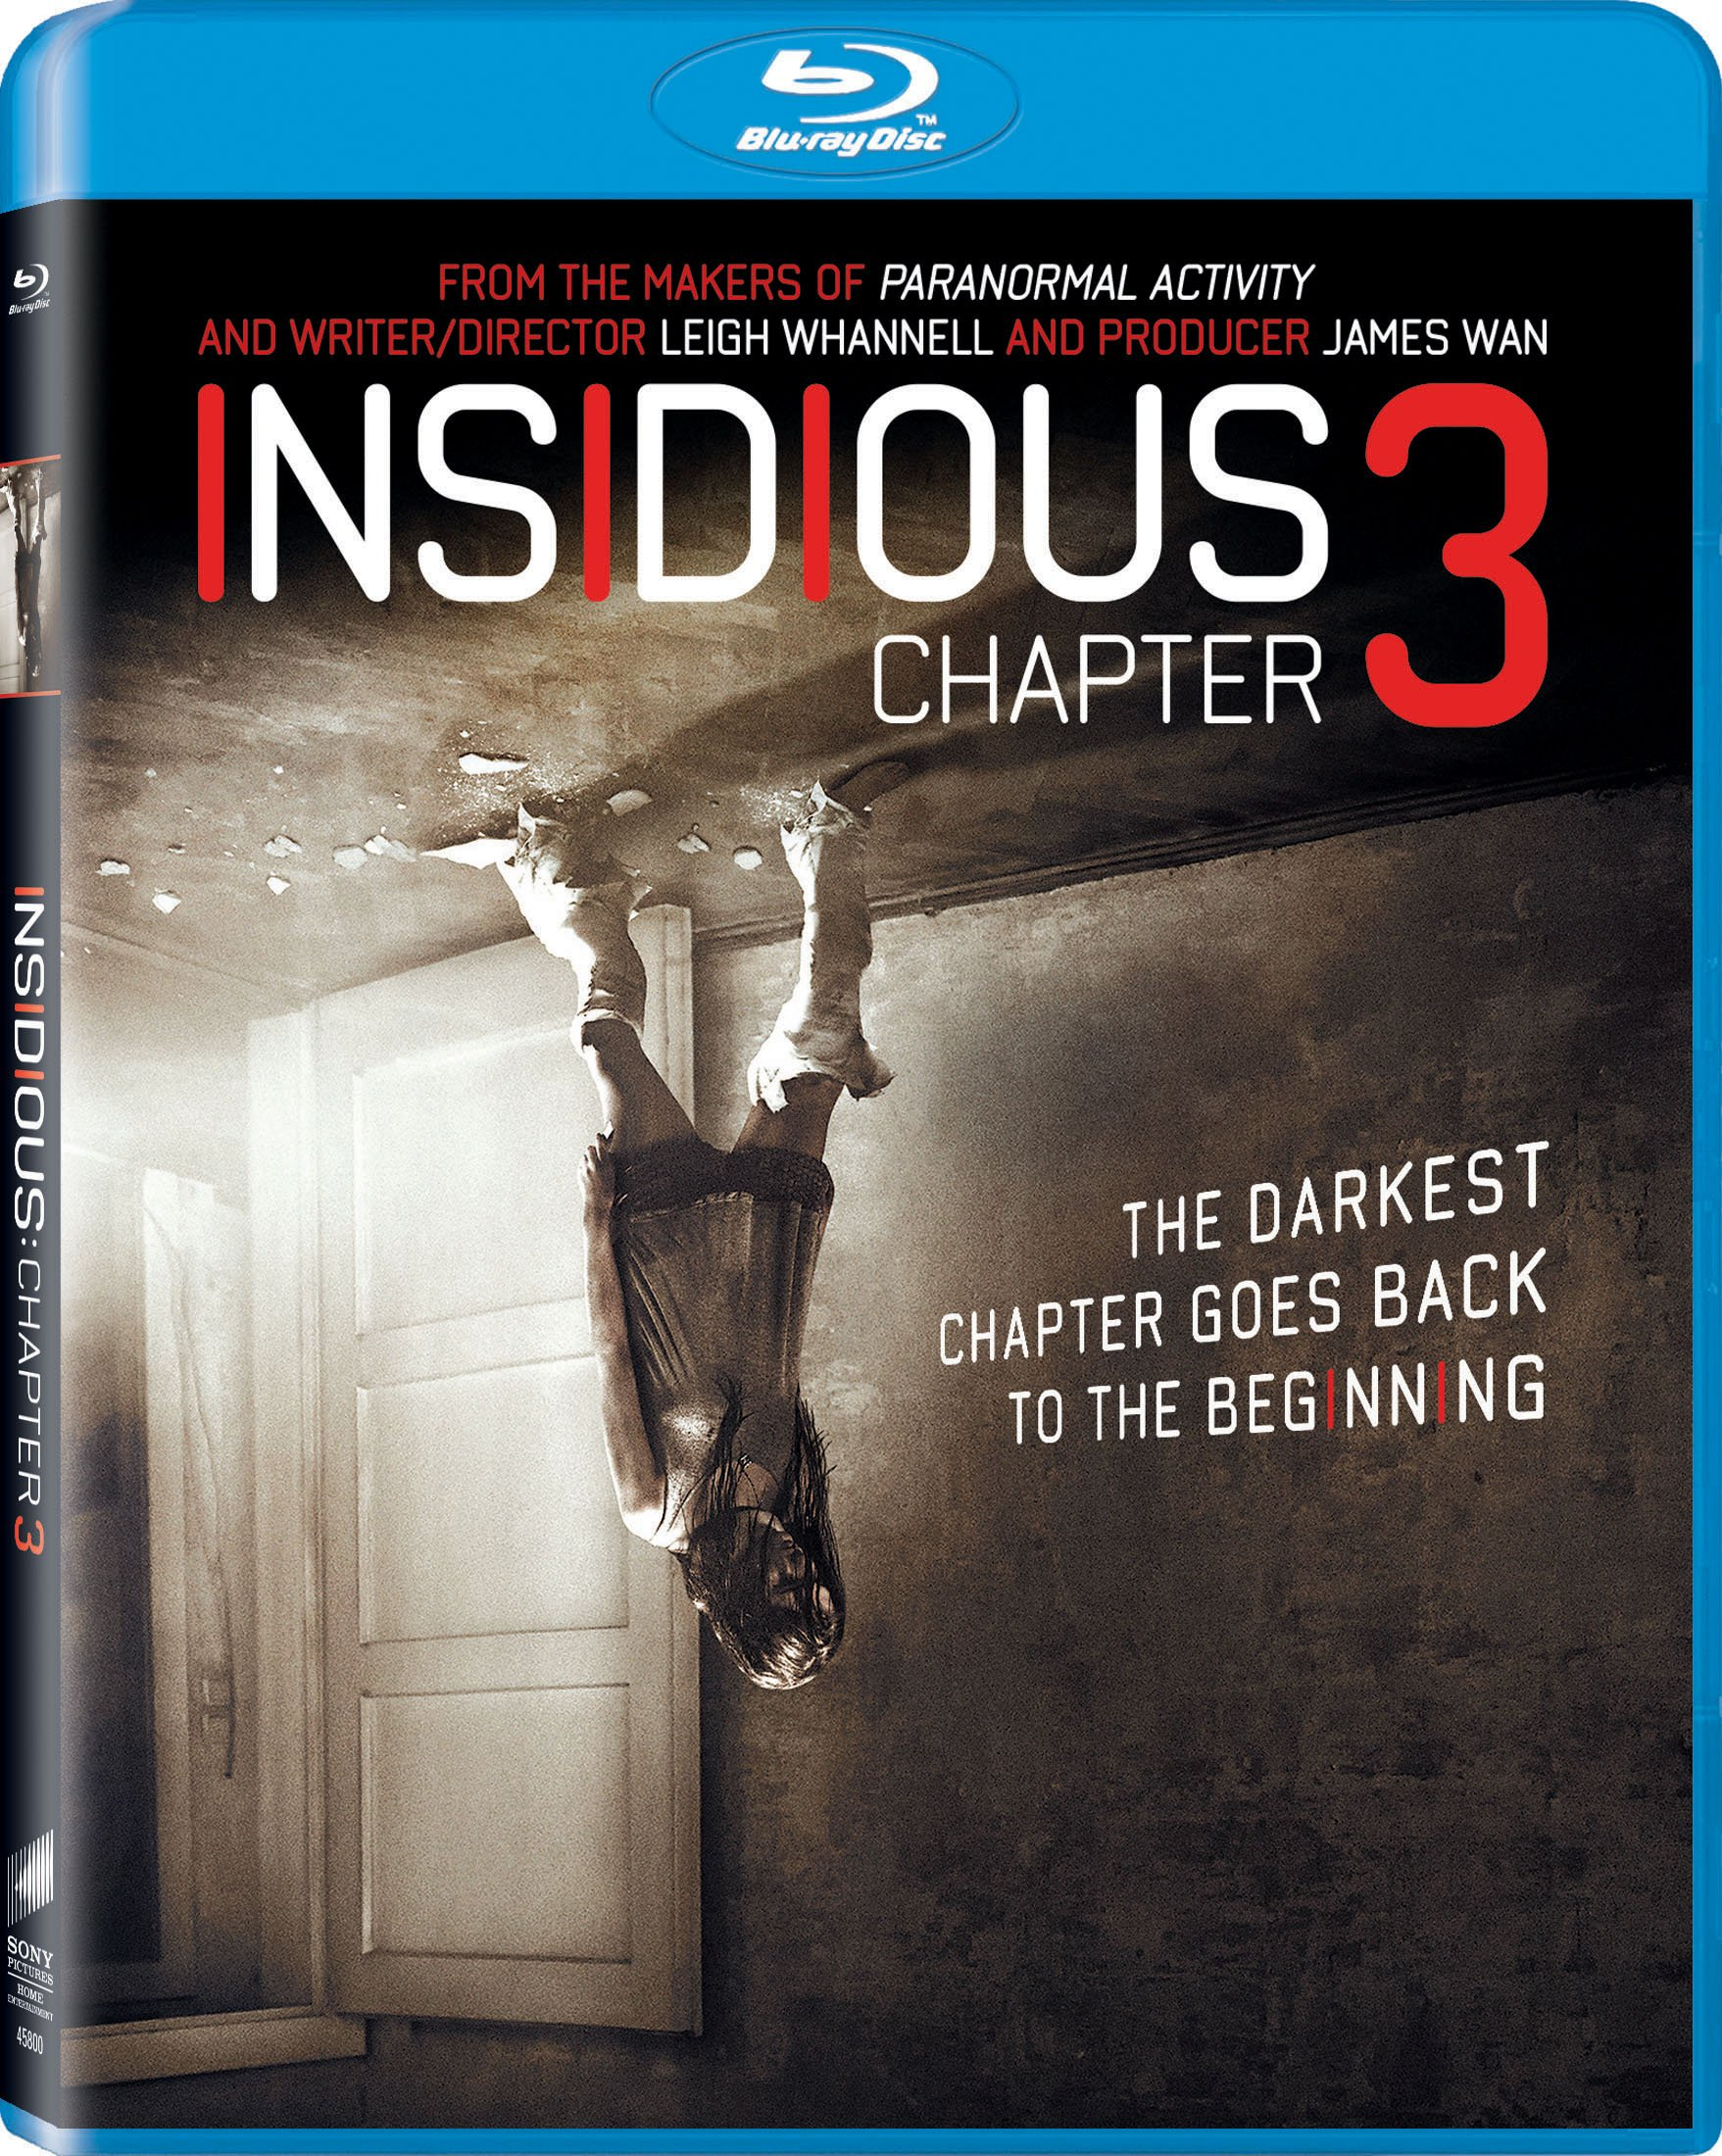 review for insidious 3